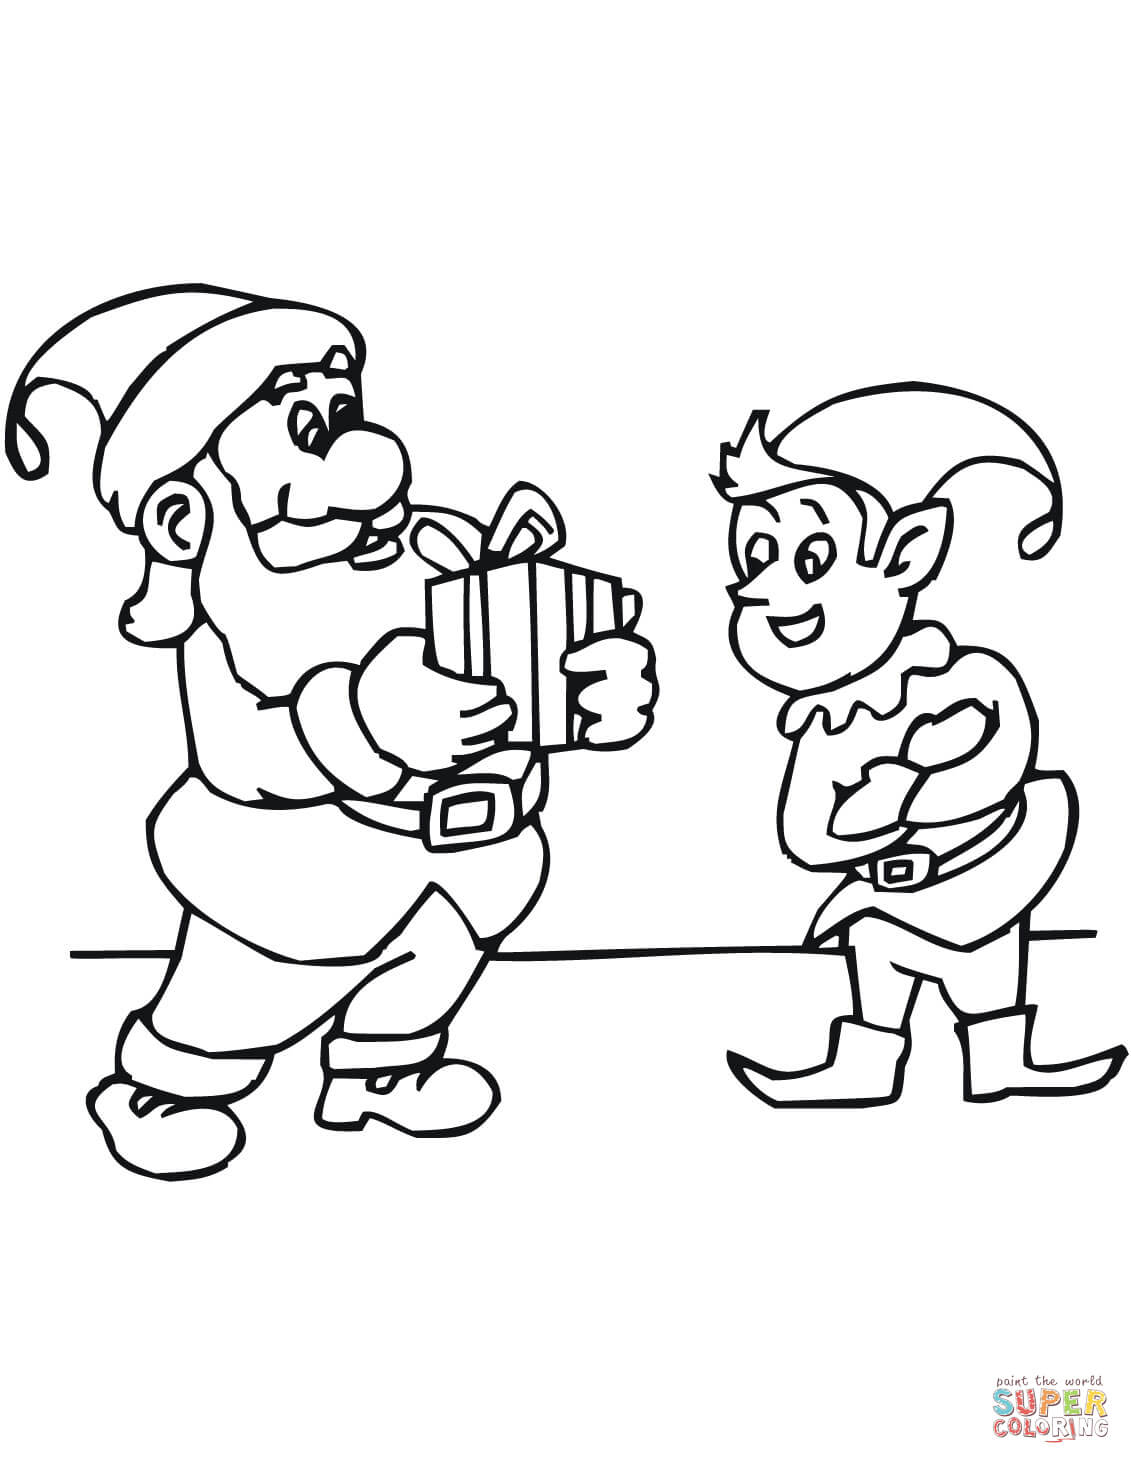 Christmas Elf Coloring Pages Coloring Ideas Coloring Ideas Elfs Printable Christmas Elves Free